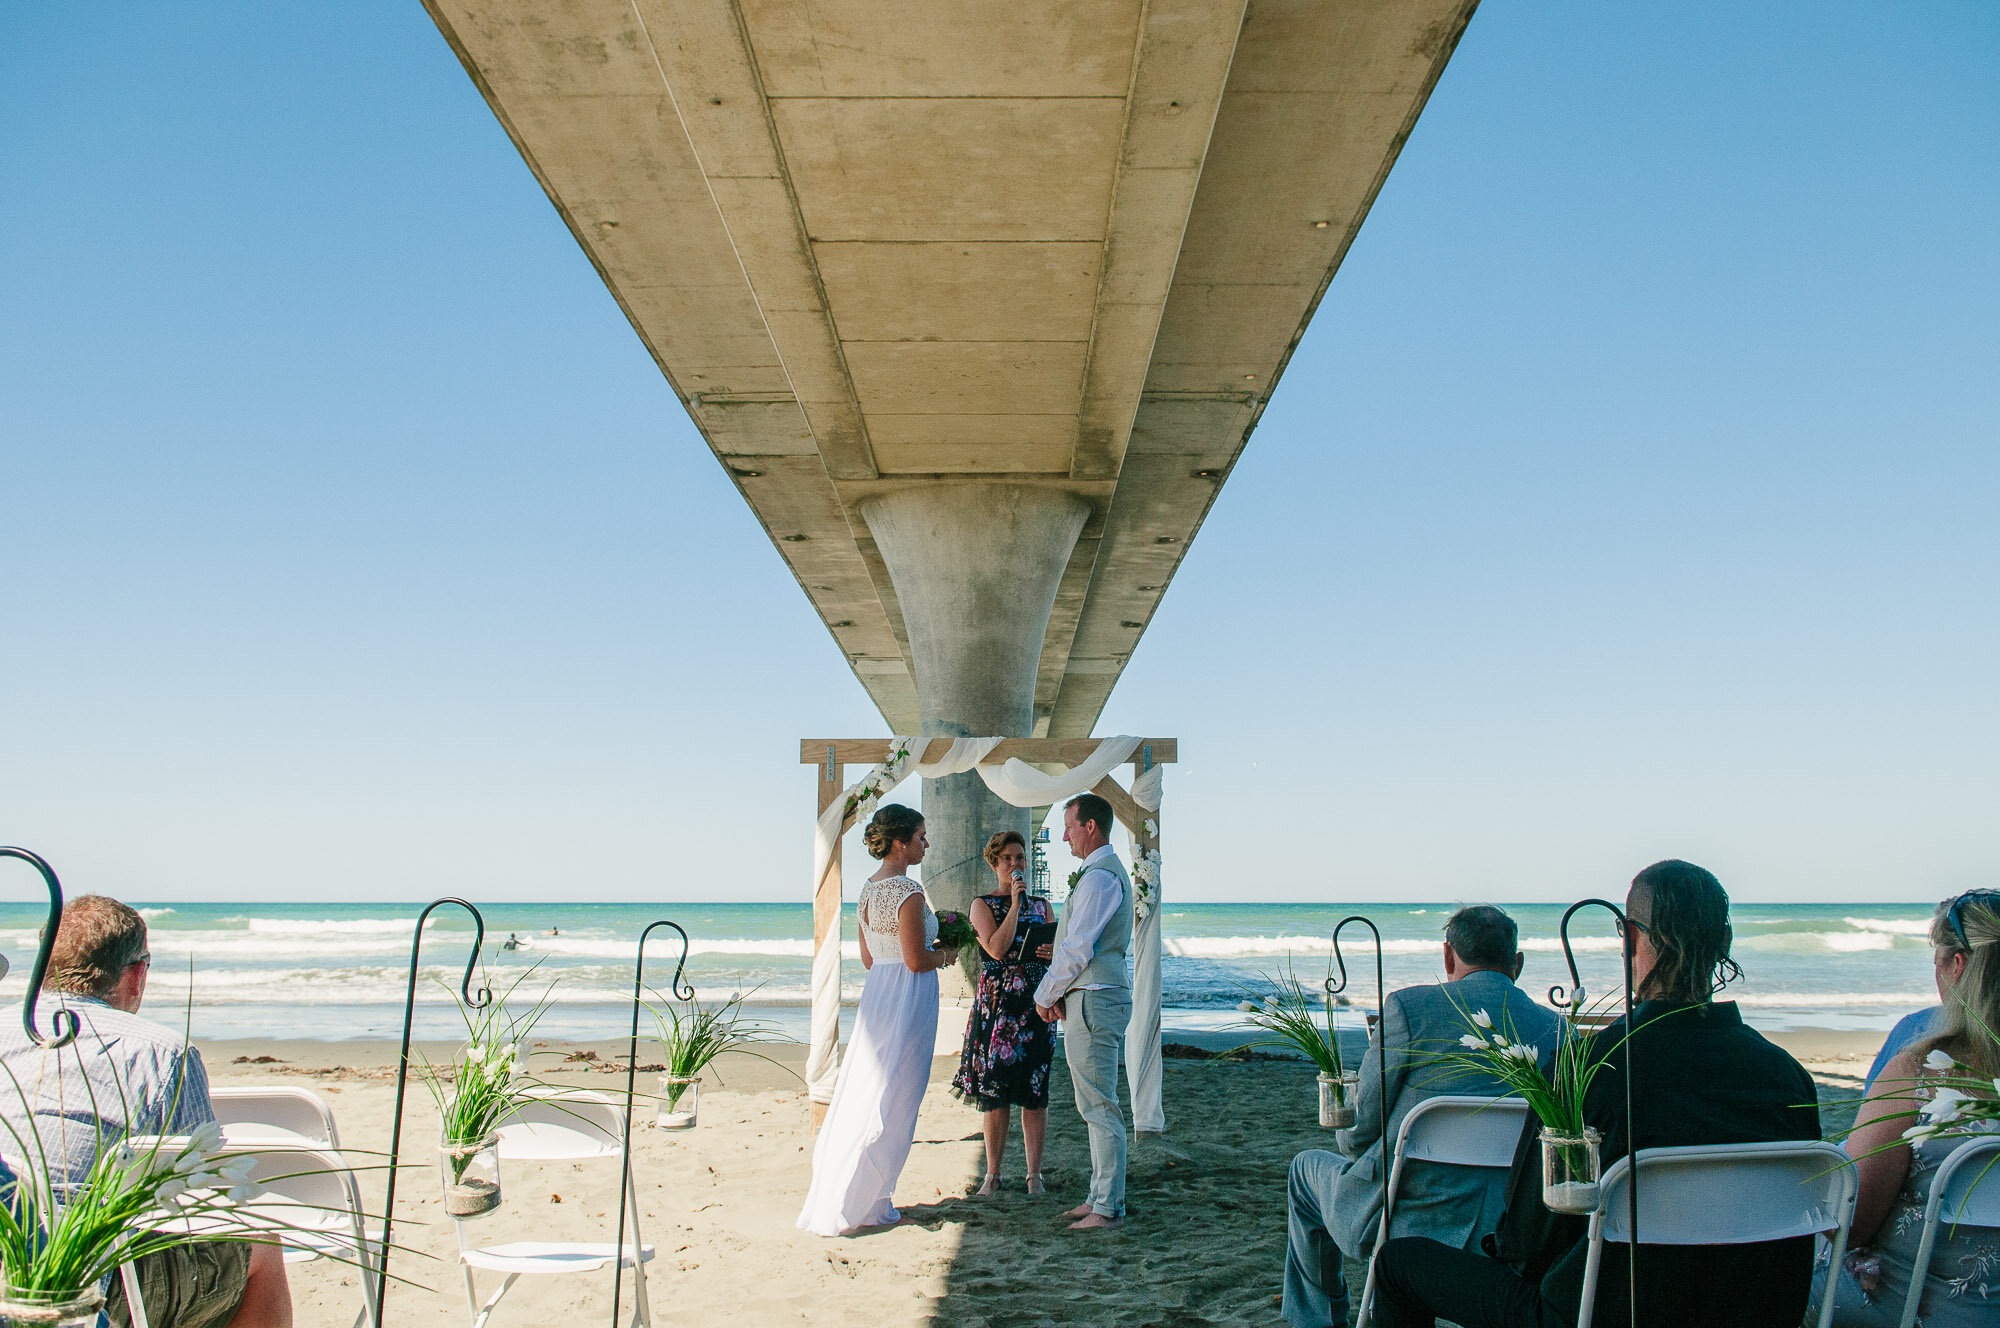 New Brighton beach wedding with Rosie and Malcolm.